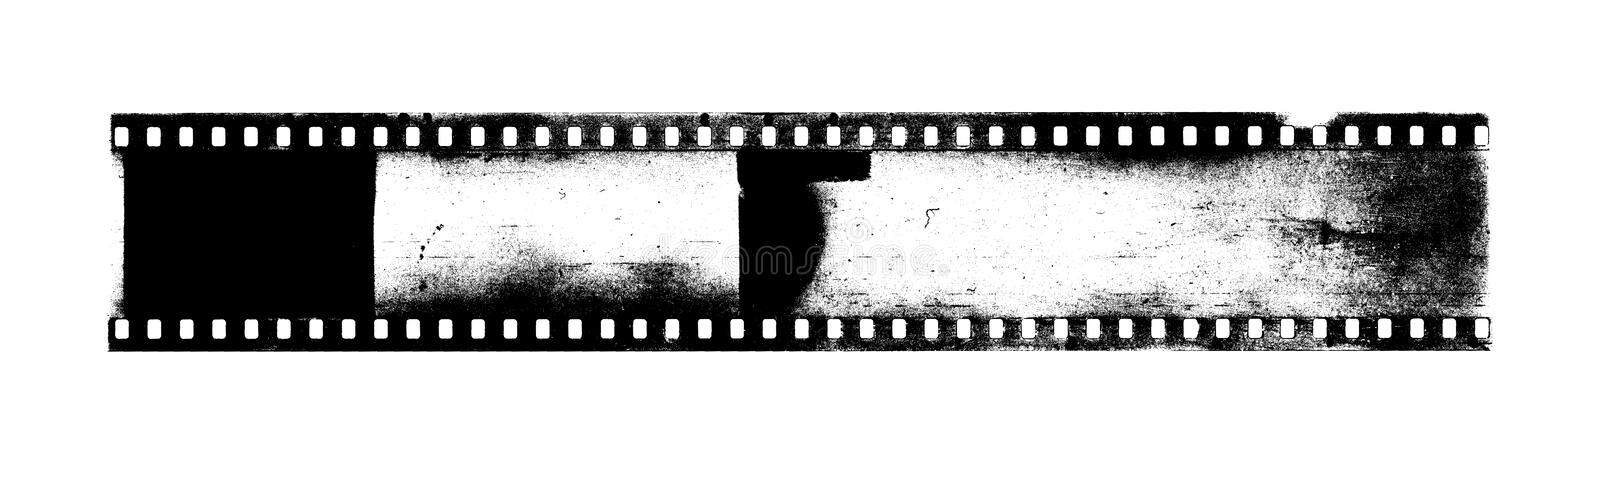 Strip of old camera film with dust and scratches. On white background vector illustration